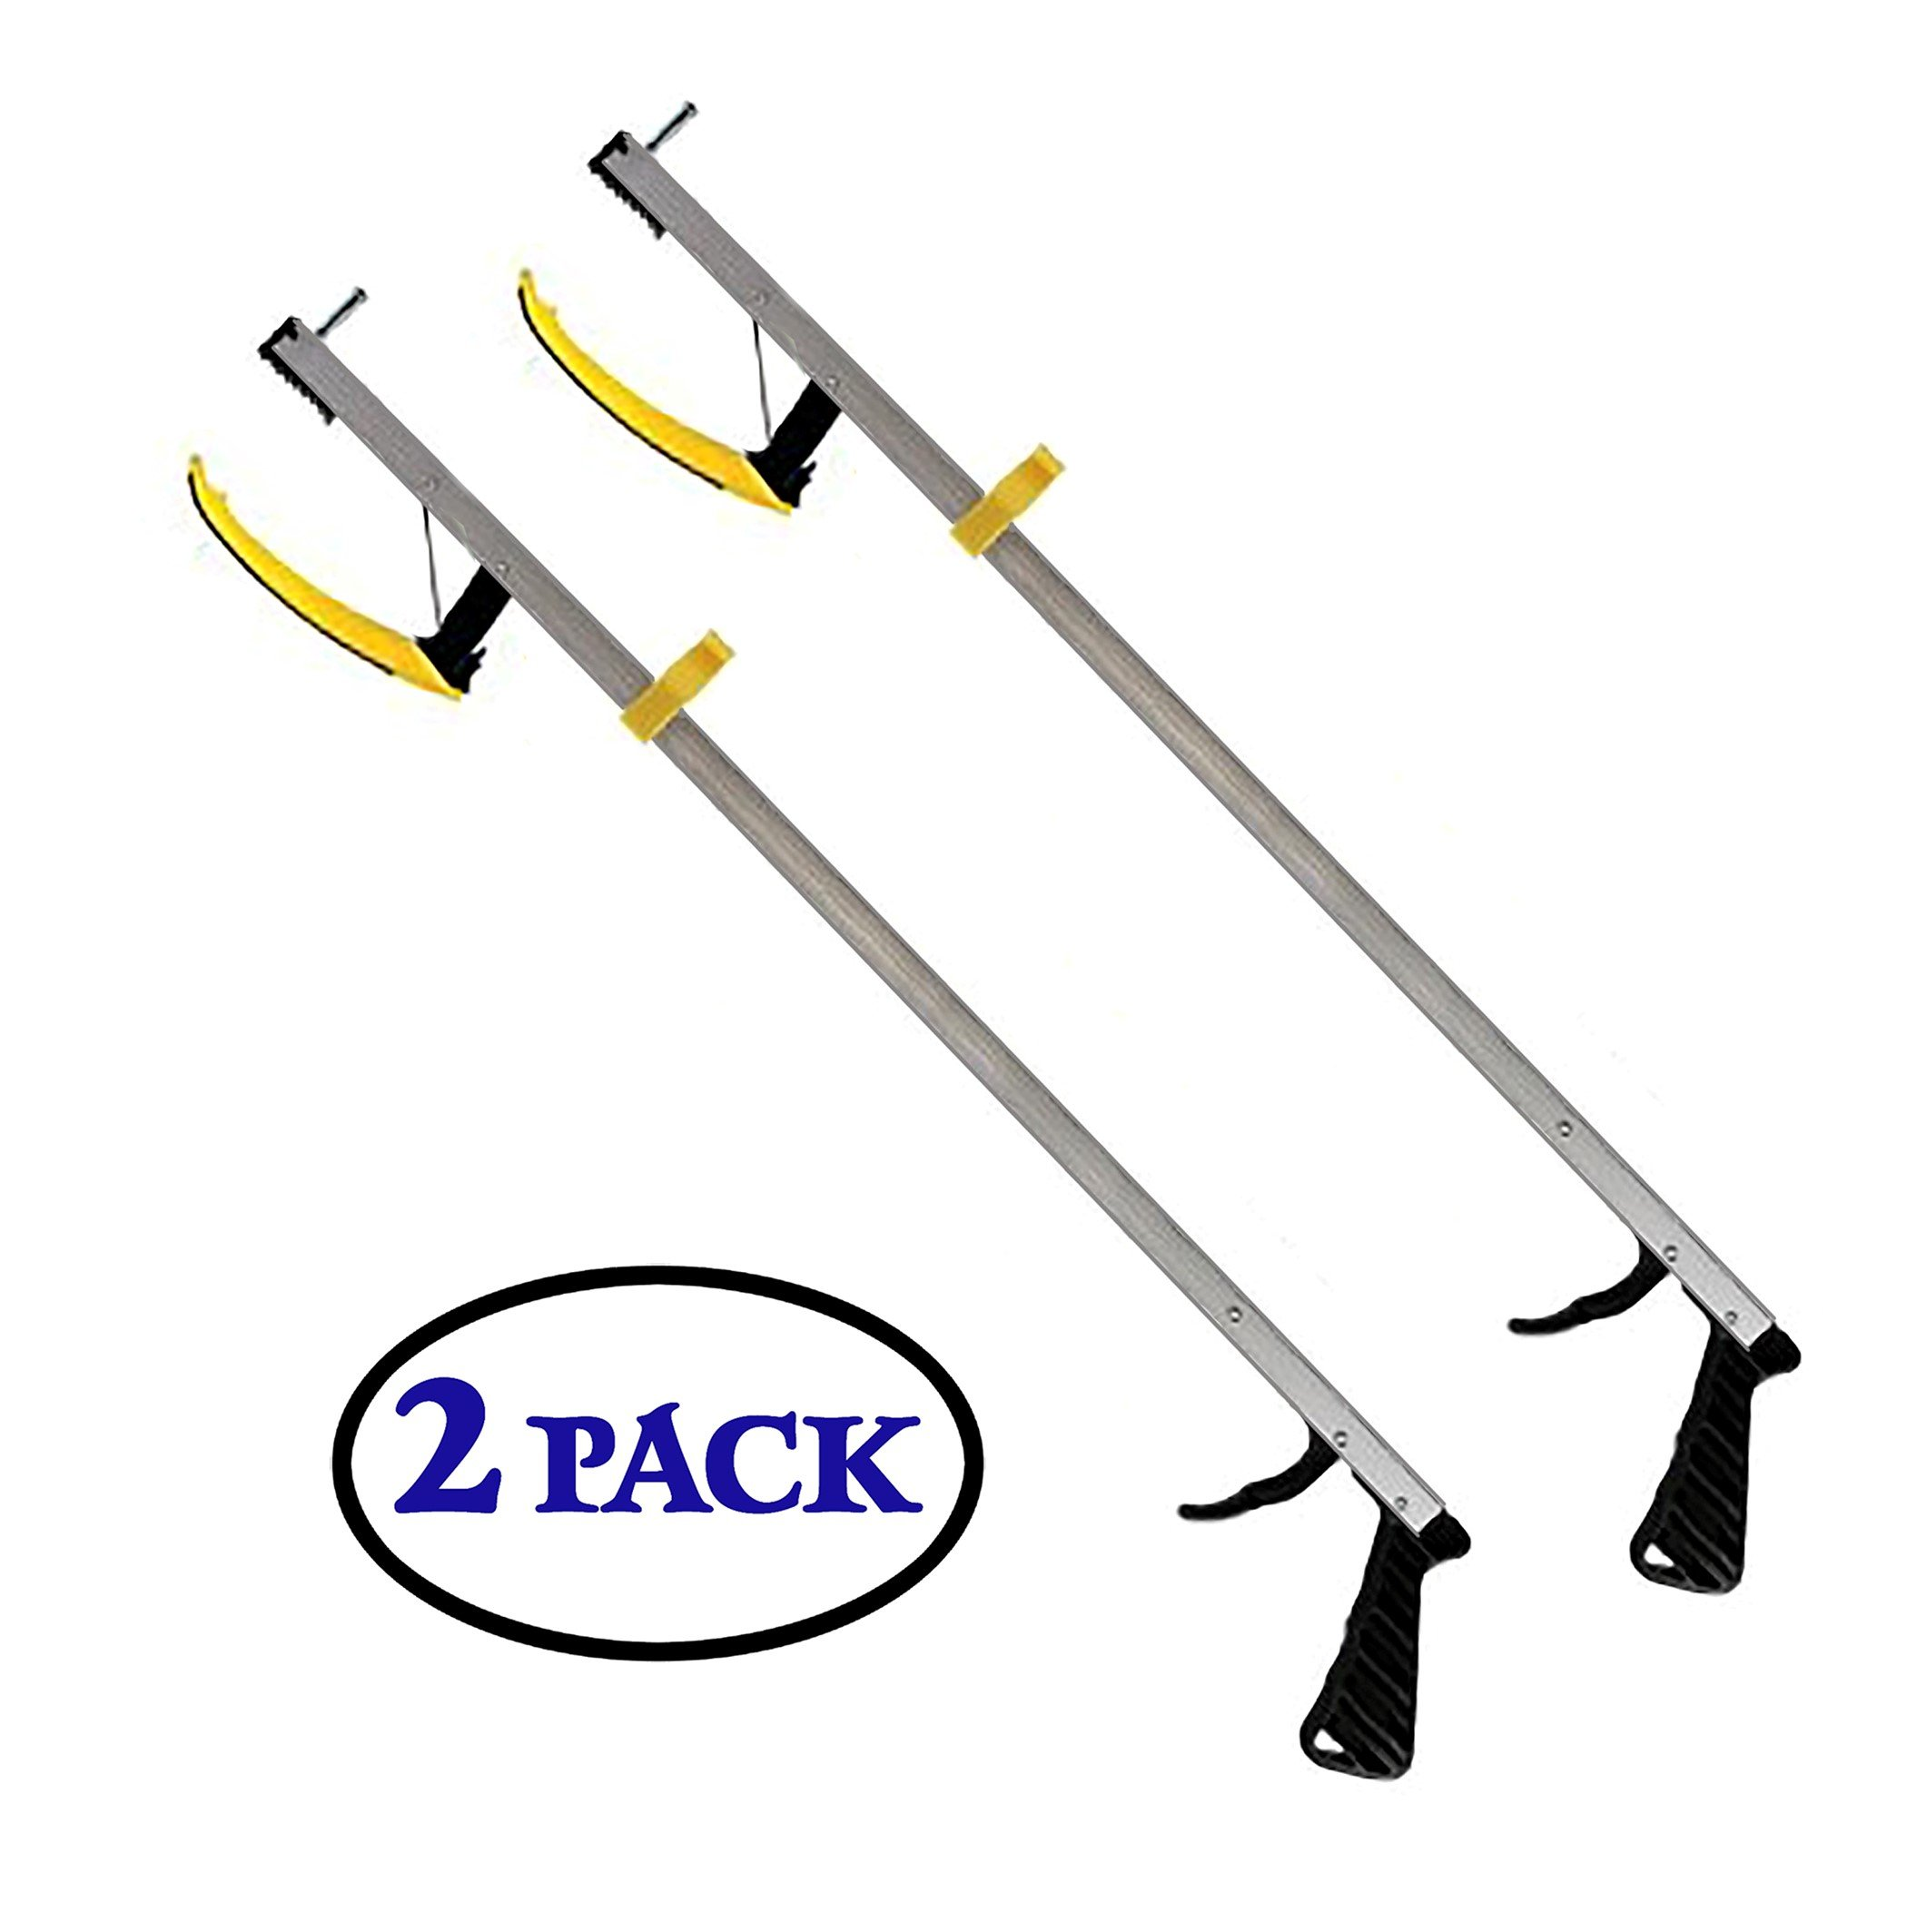 RMS 32'' Grabber Reacher 2-Pack | Magnetic Tip Helps Pick Up Small Objects | Fitted with Post to Assist with Dressing | Mobility Aid Reaching Assist Tool, Arm Extension (32-inch) by RMS Royal Medical Solutions, Inc.